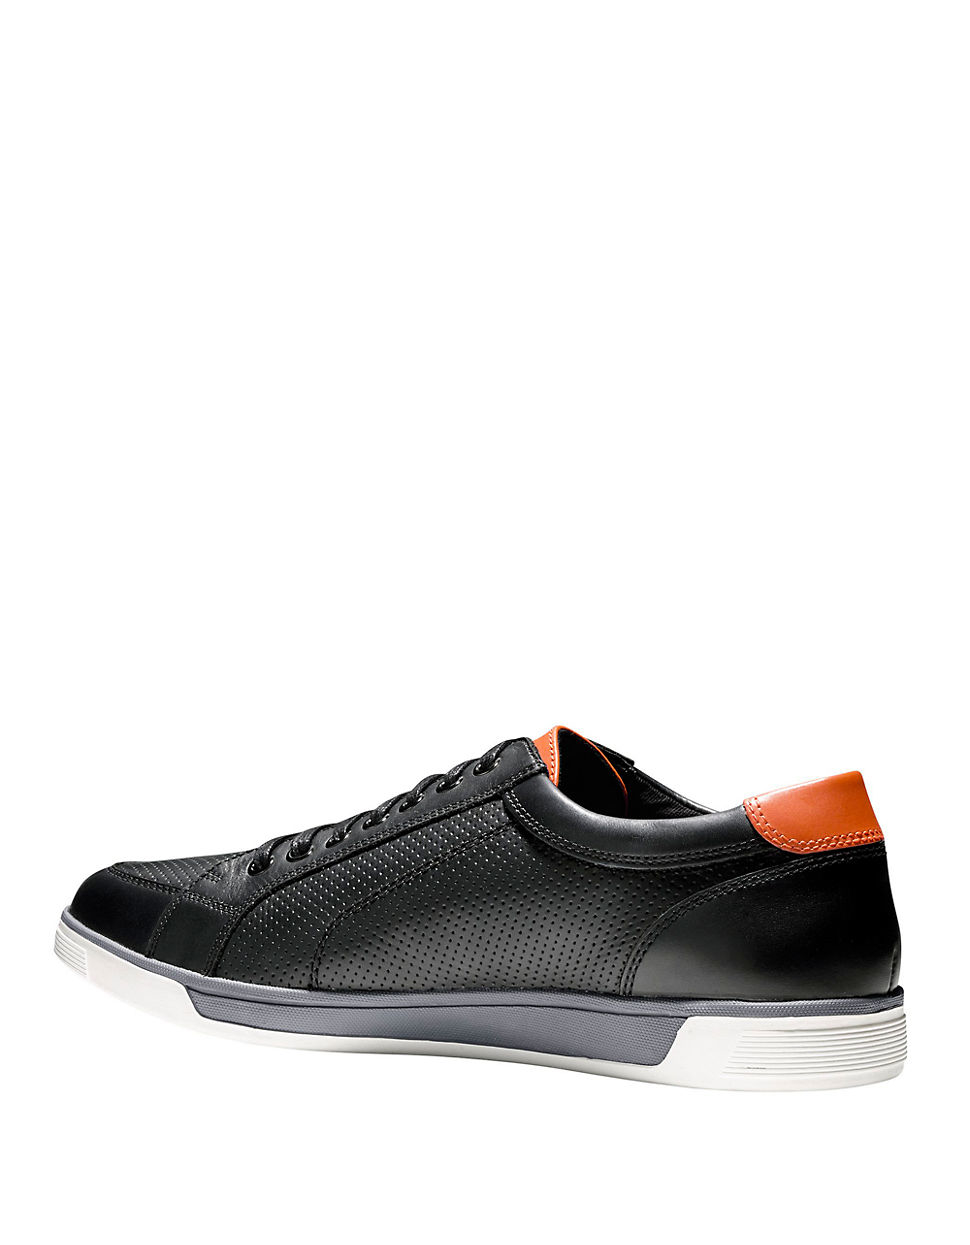 Cole haan Leather Lace-up Sneakers in Black for Men